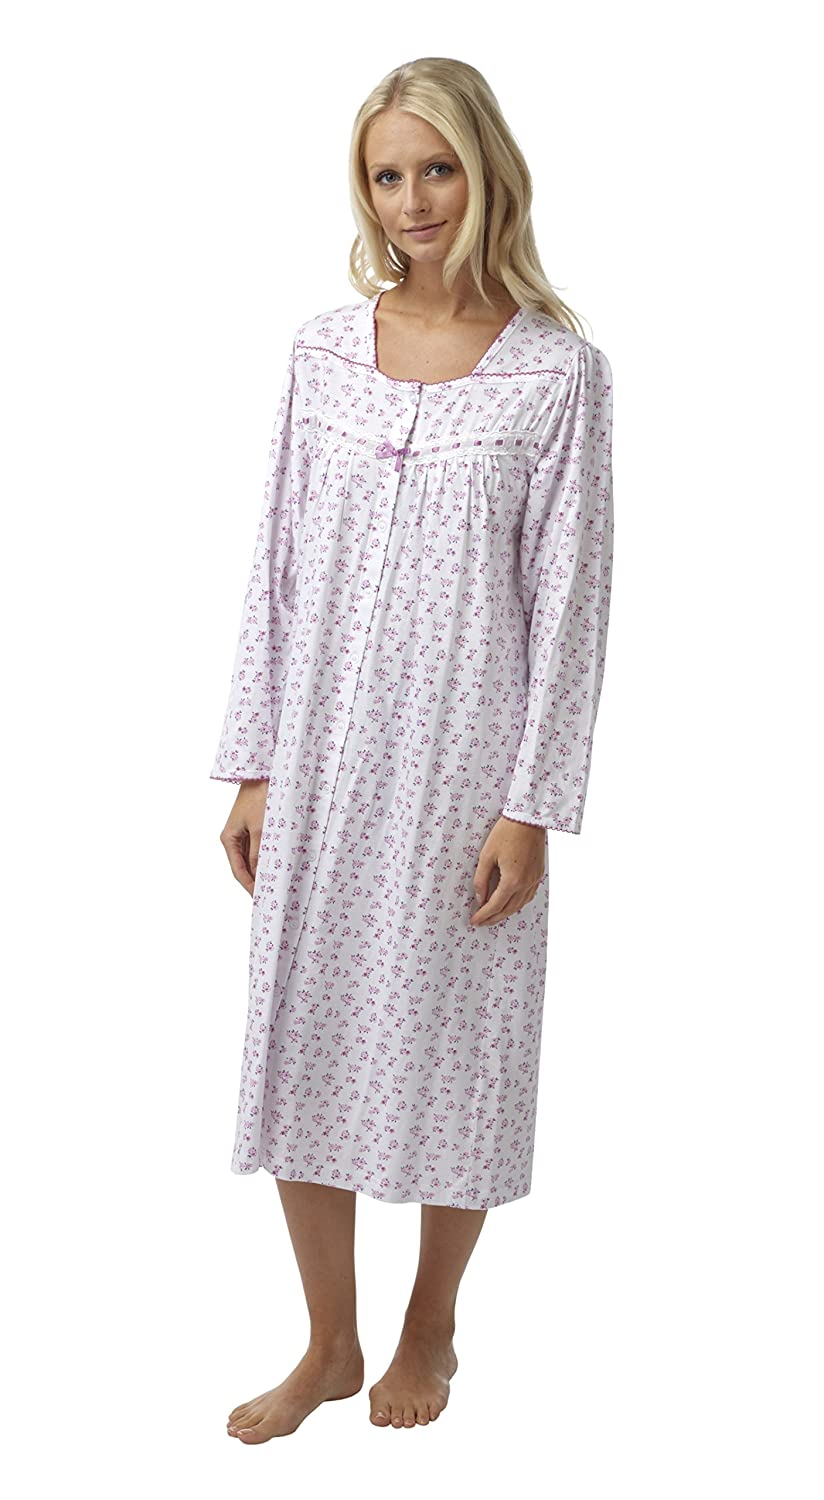 Ladies Floral Button Through 100% Cotton Jersey Long Sleeved Nightdress. Pink or Blue. Sizes 8-10 1214 16-18 20-22 24-26